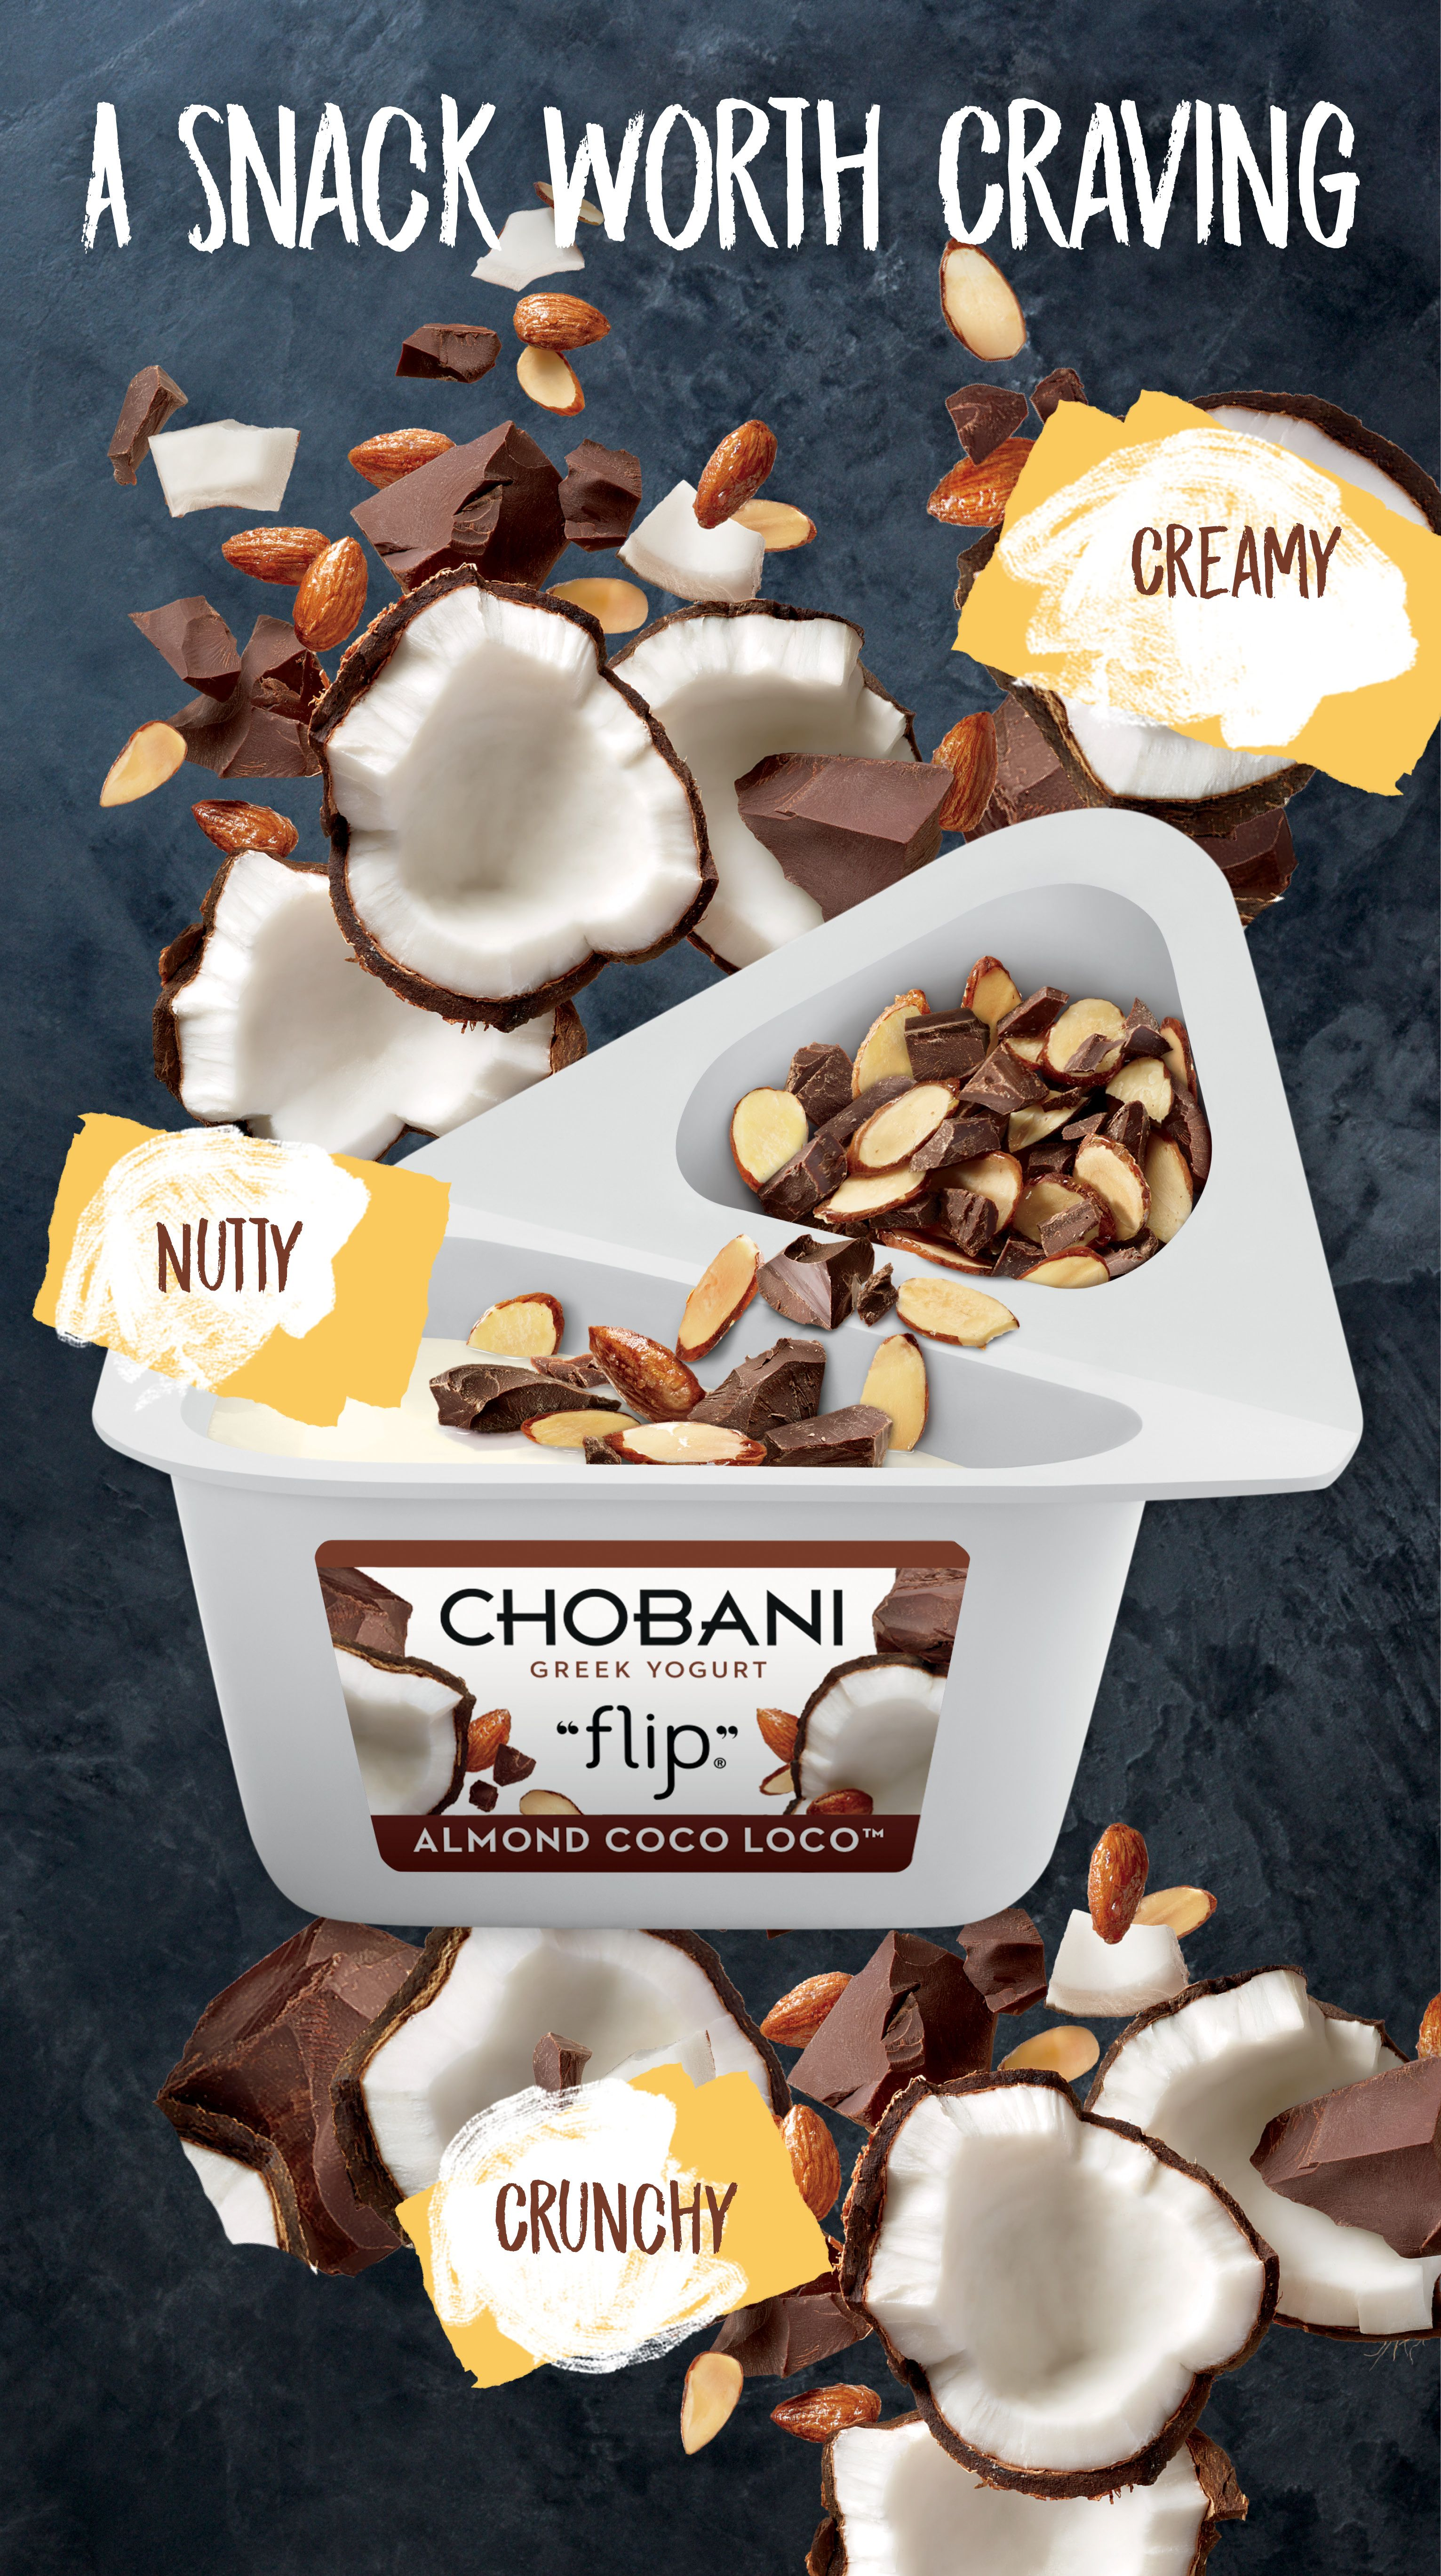 Real almonds. Real coconut. Real chocolate. Real Greek Yogurt. Snacking reinvented at the intersection of creamy and crunchy. Chobani Flip Almond Coco Loco.